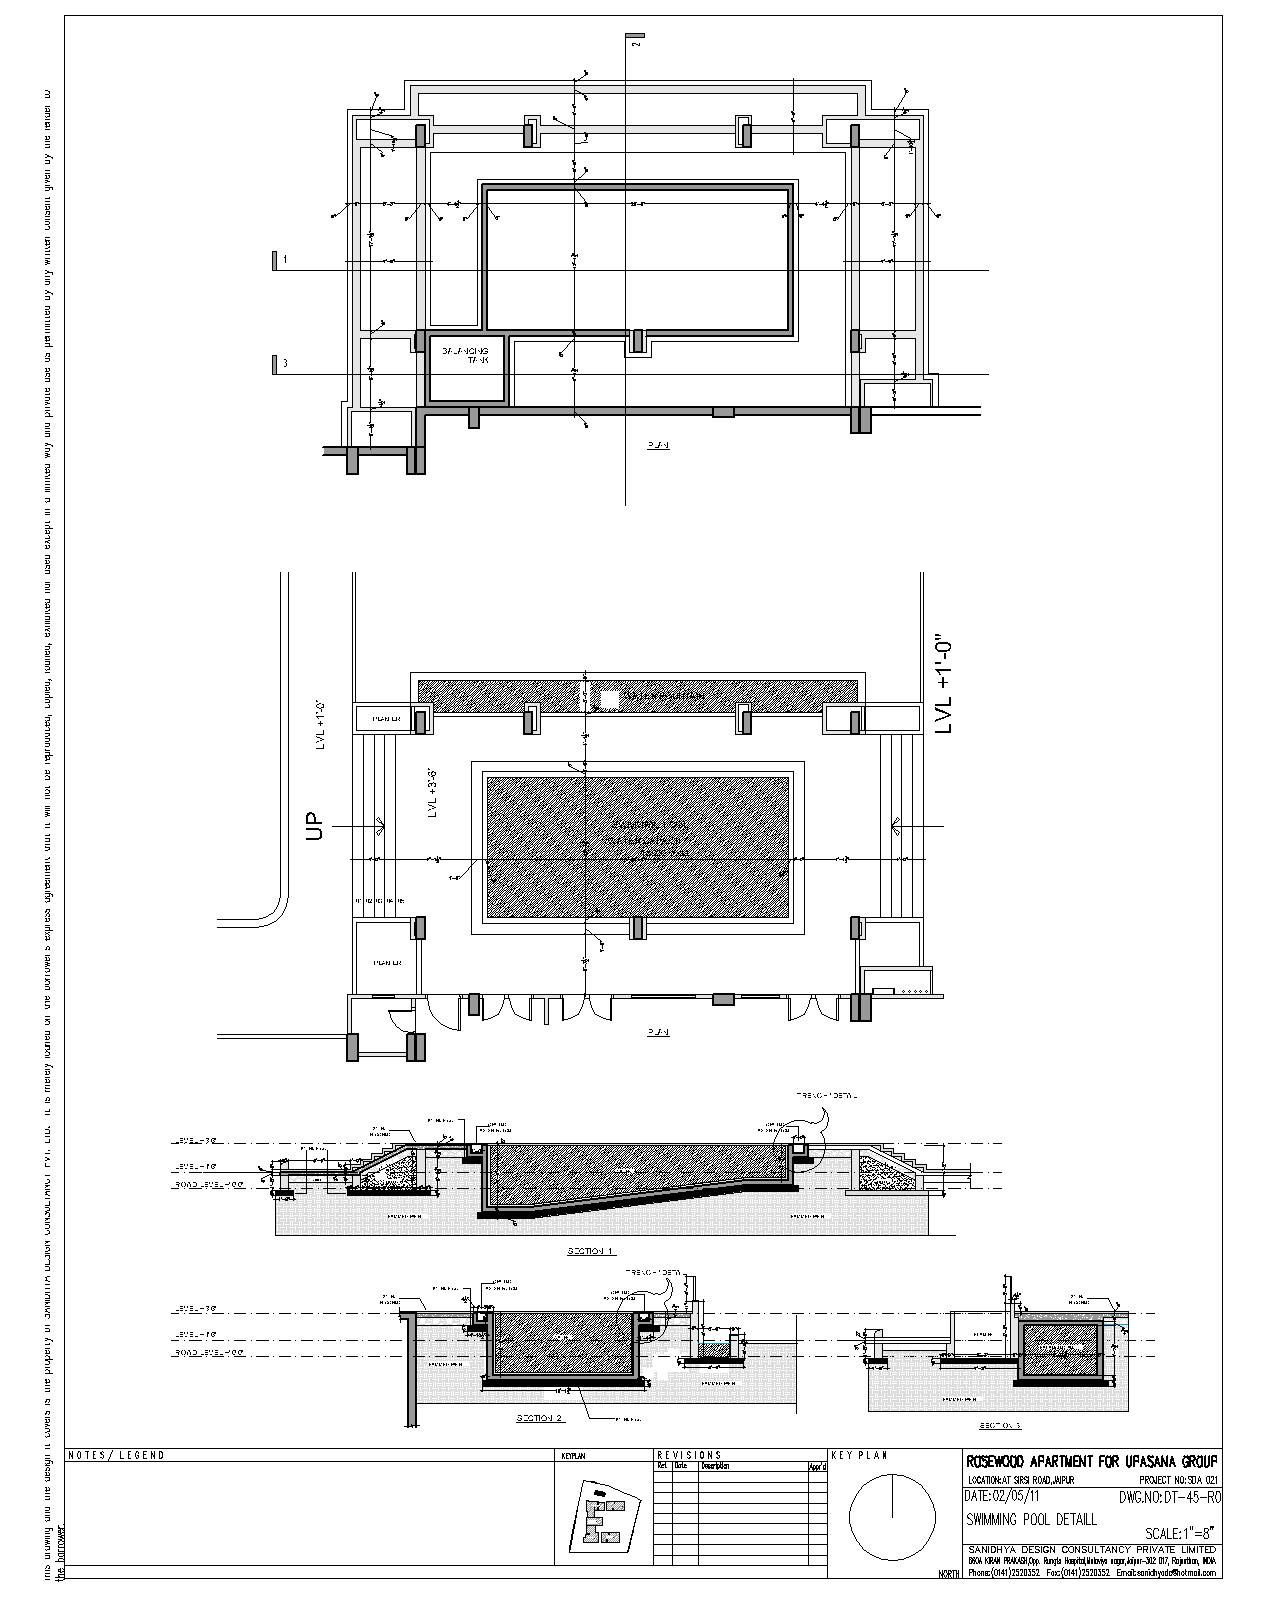 Swimming Pool Construction Detail Drawings : Swimming pool section detail drawinterior infinity